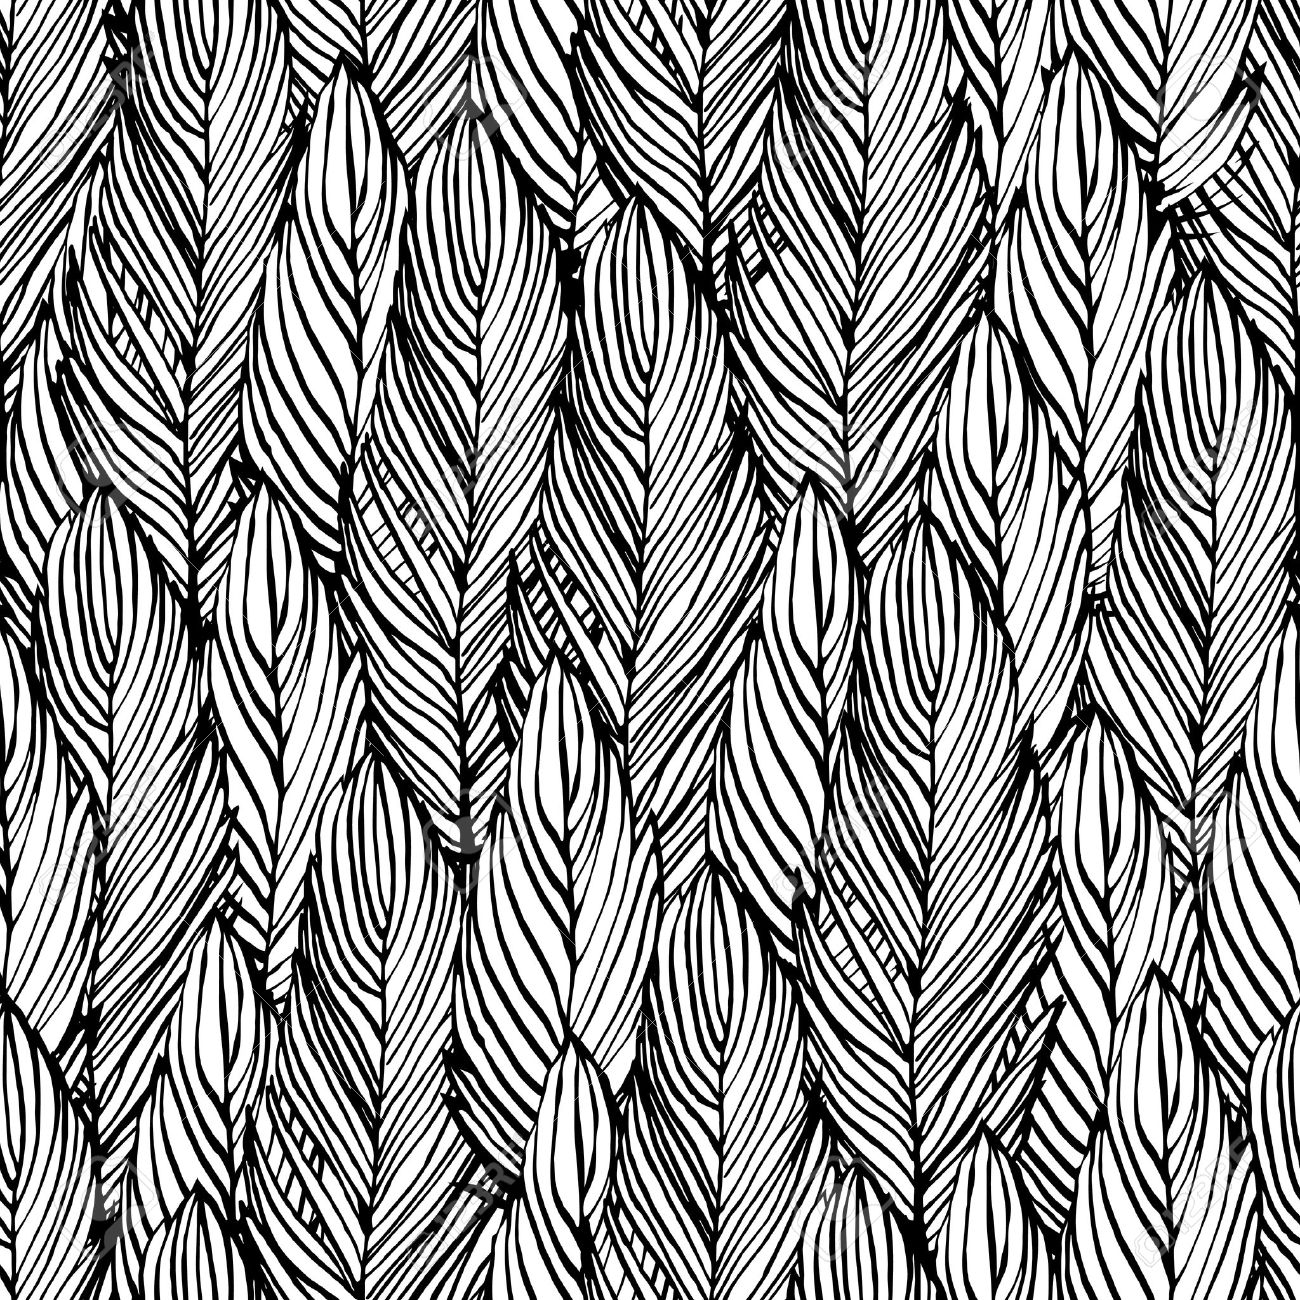 1300x1300 Outline Hand Draw Feather Seamless Pattern, Black And White